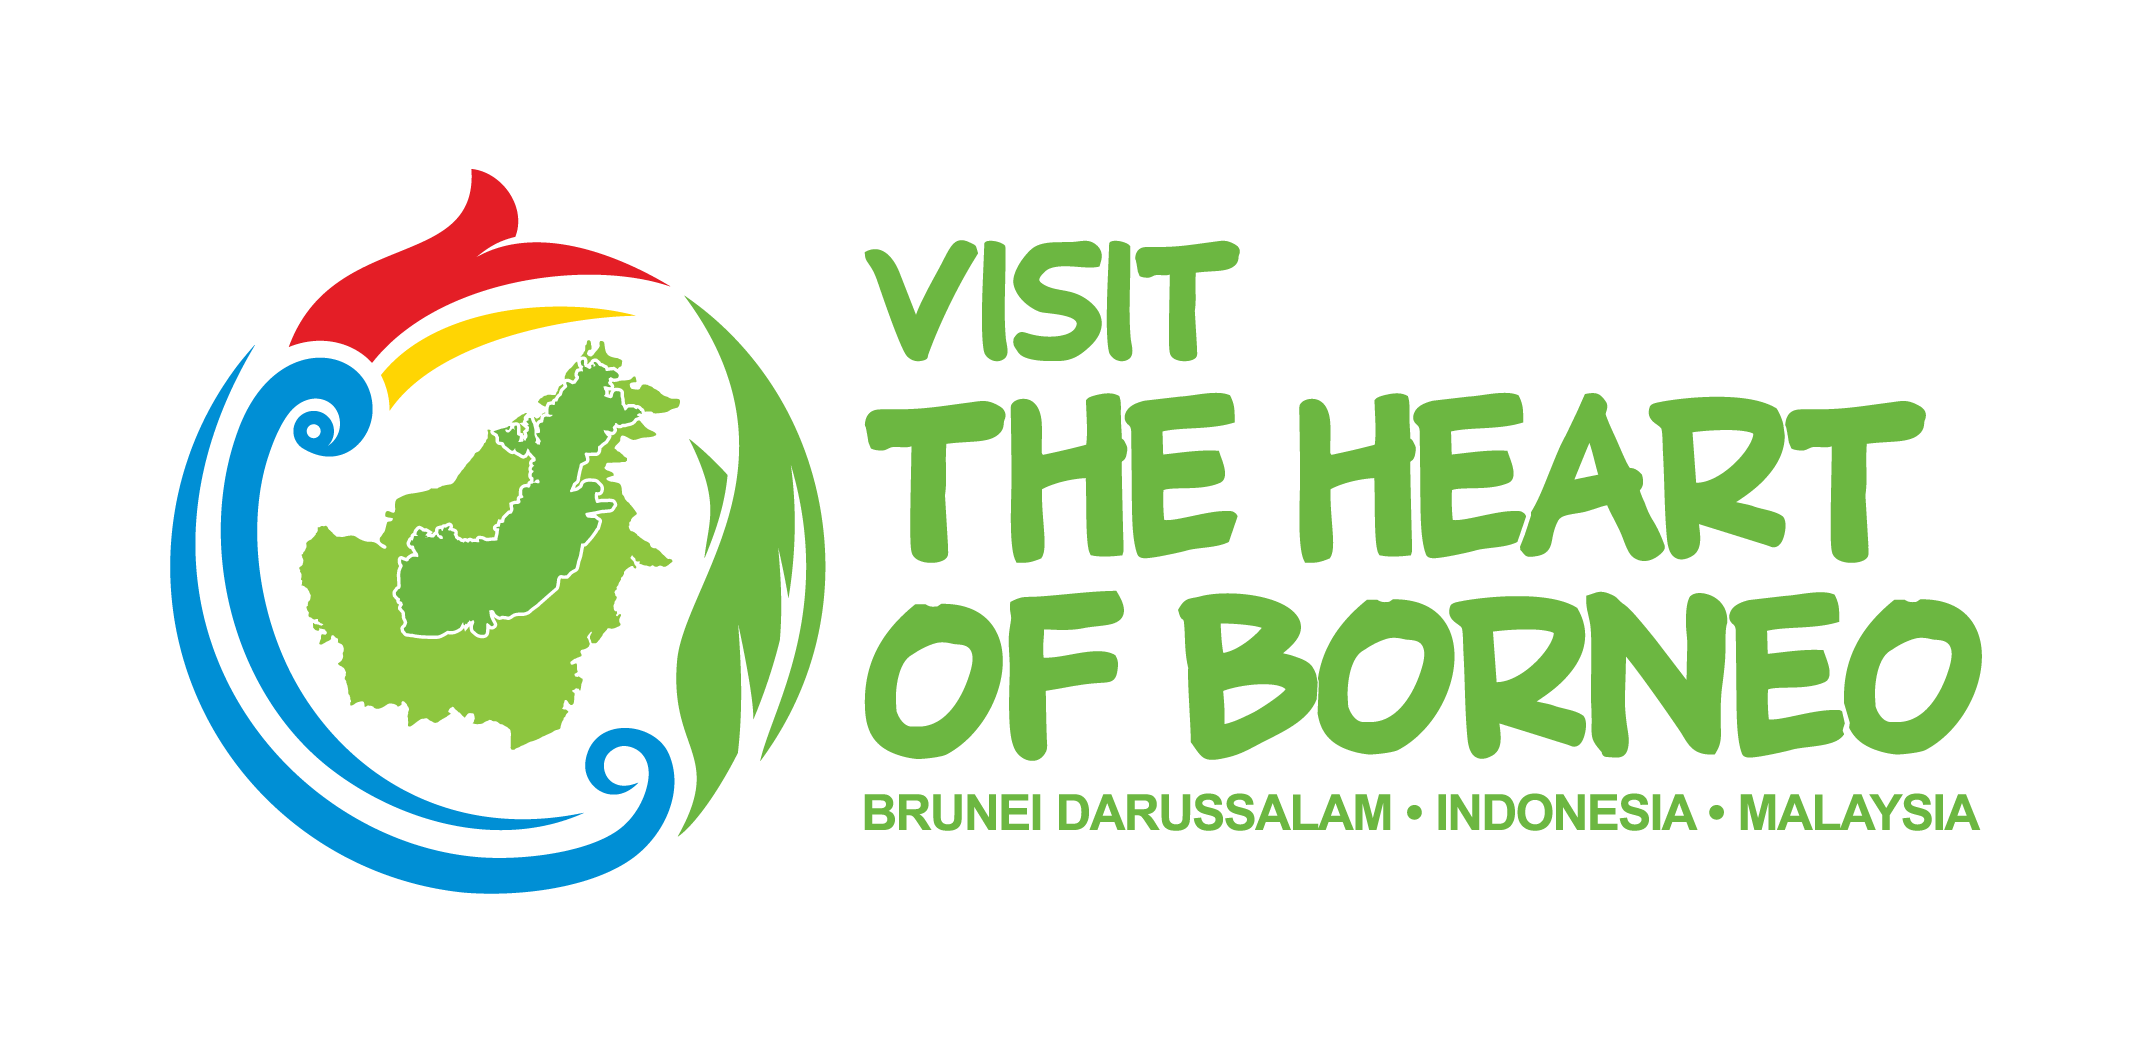 Visit The Heart of Borneo, HoB, Campaign, brunei darussalam, indonesia, malaysia